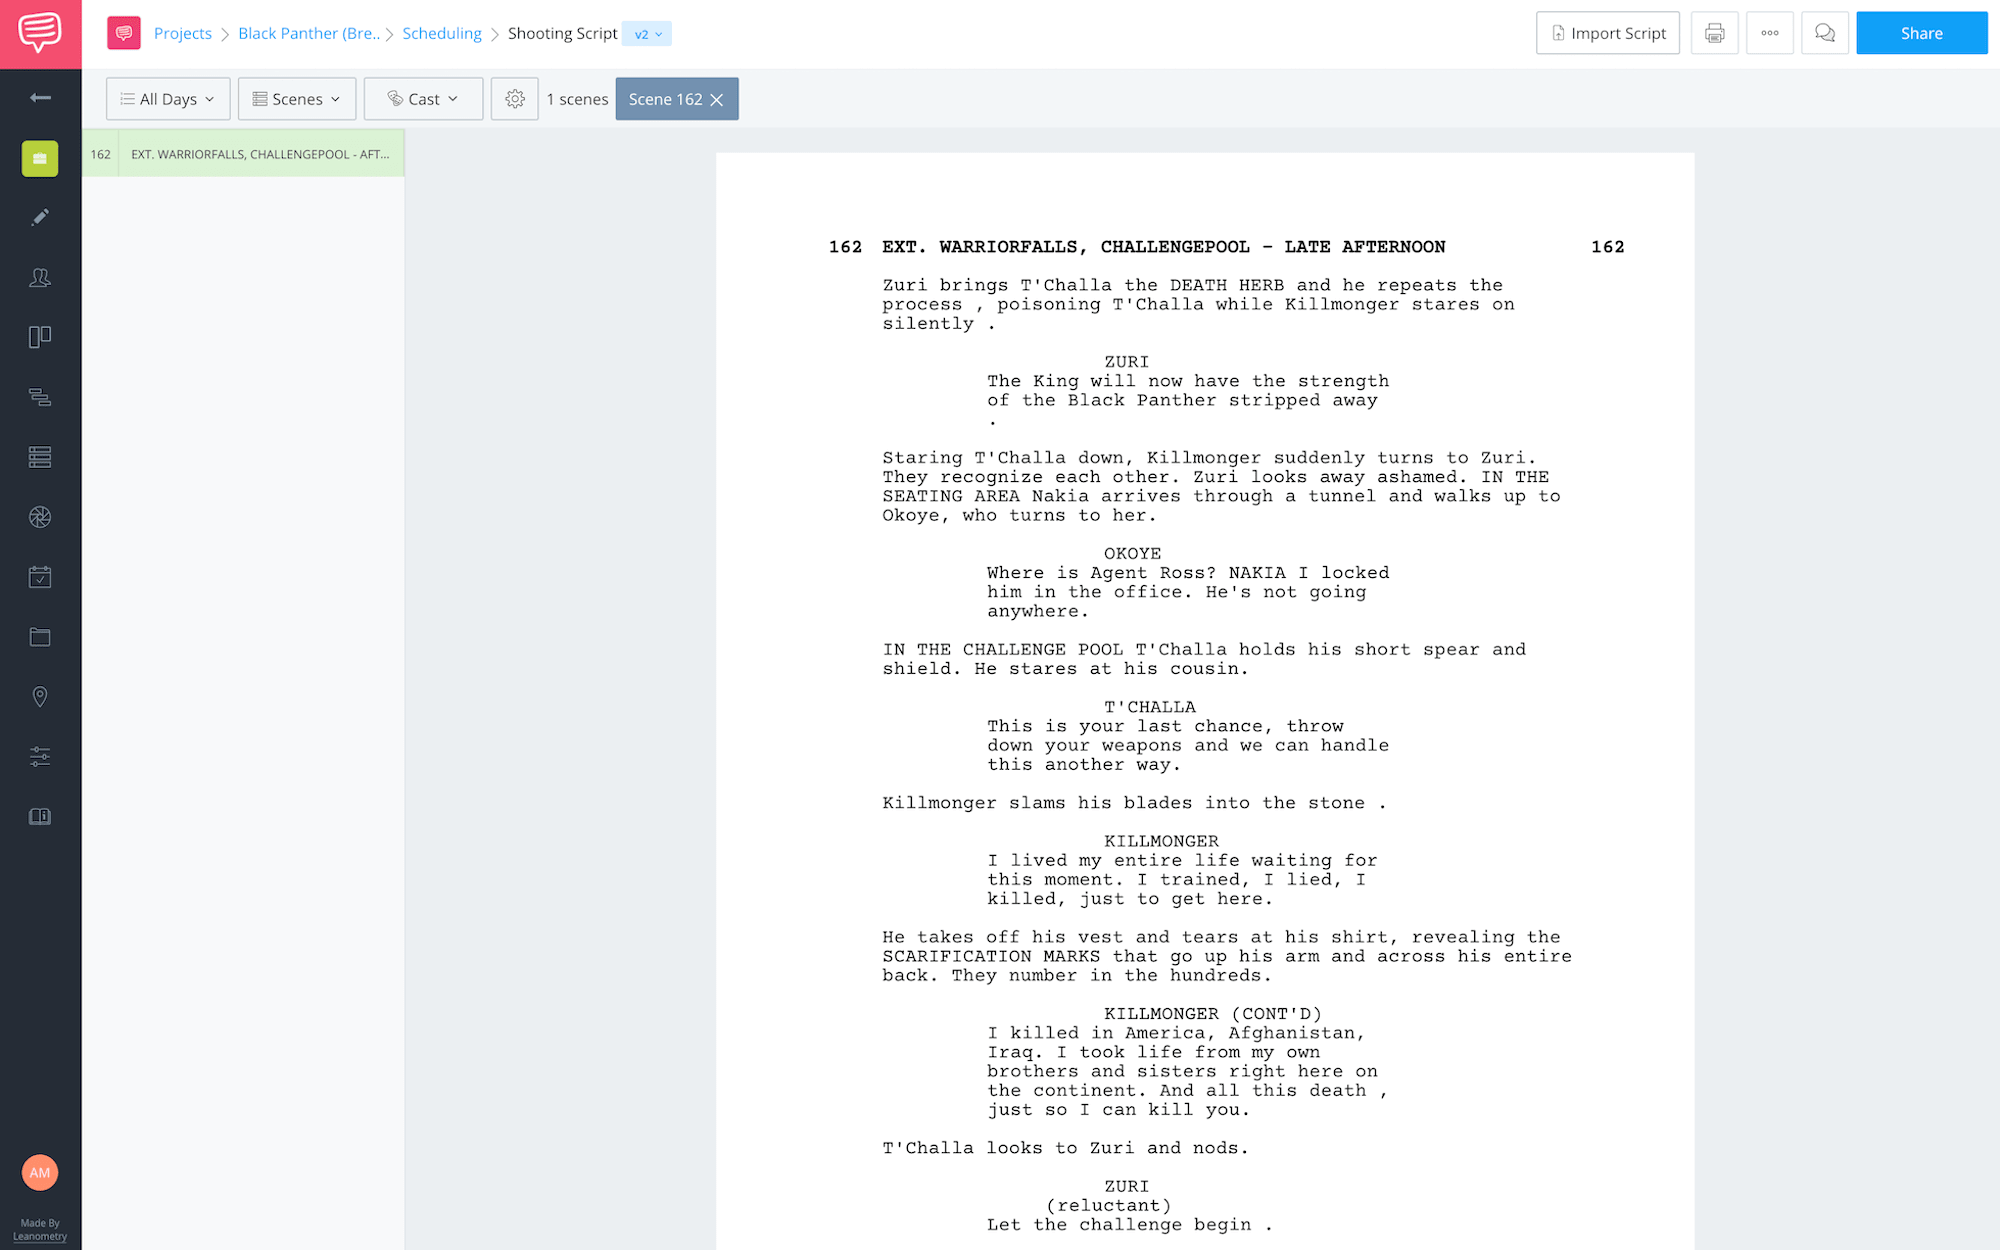 Black Panther Fight Scene Shooting Script